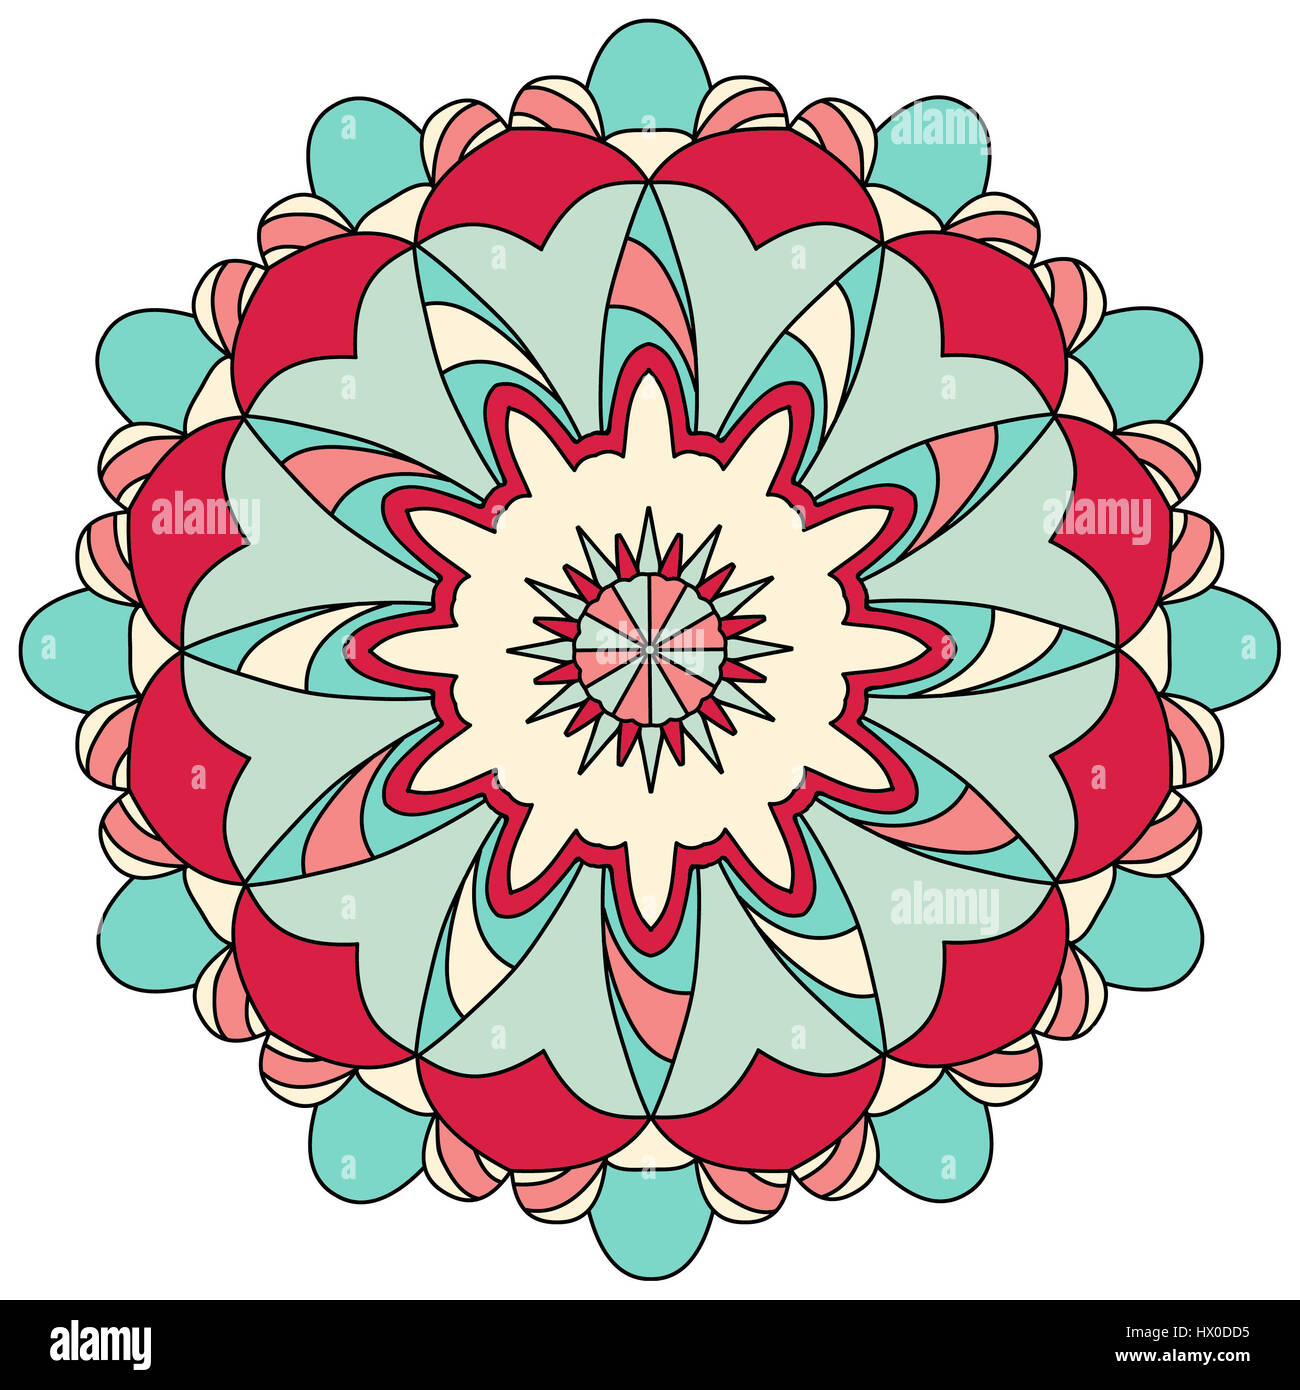 Red and blue mandala illustration, colored line drawing - Stock Image